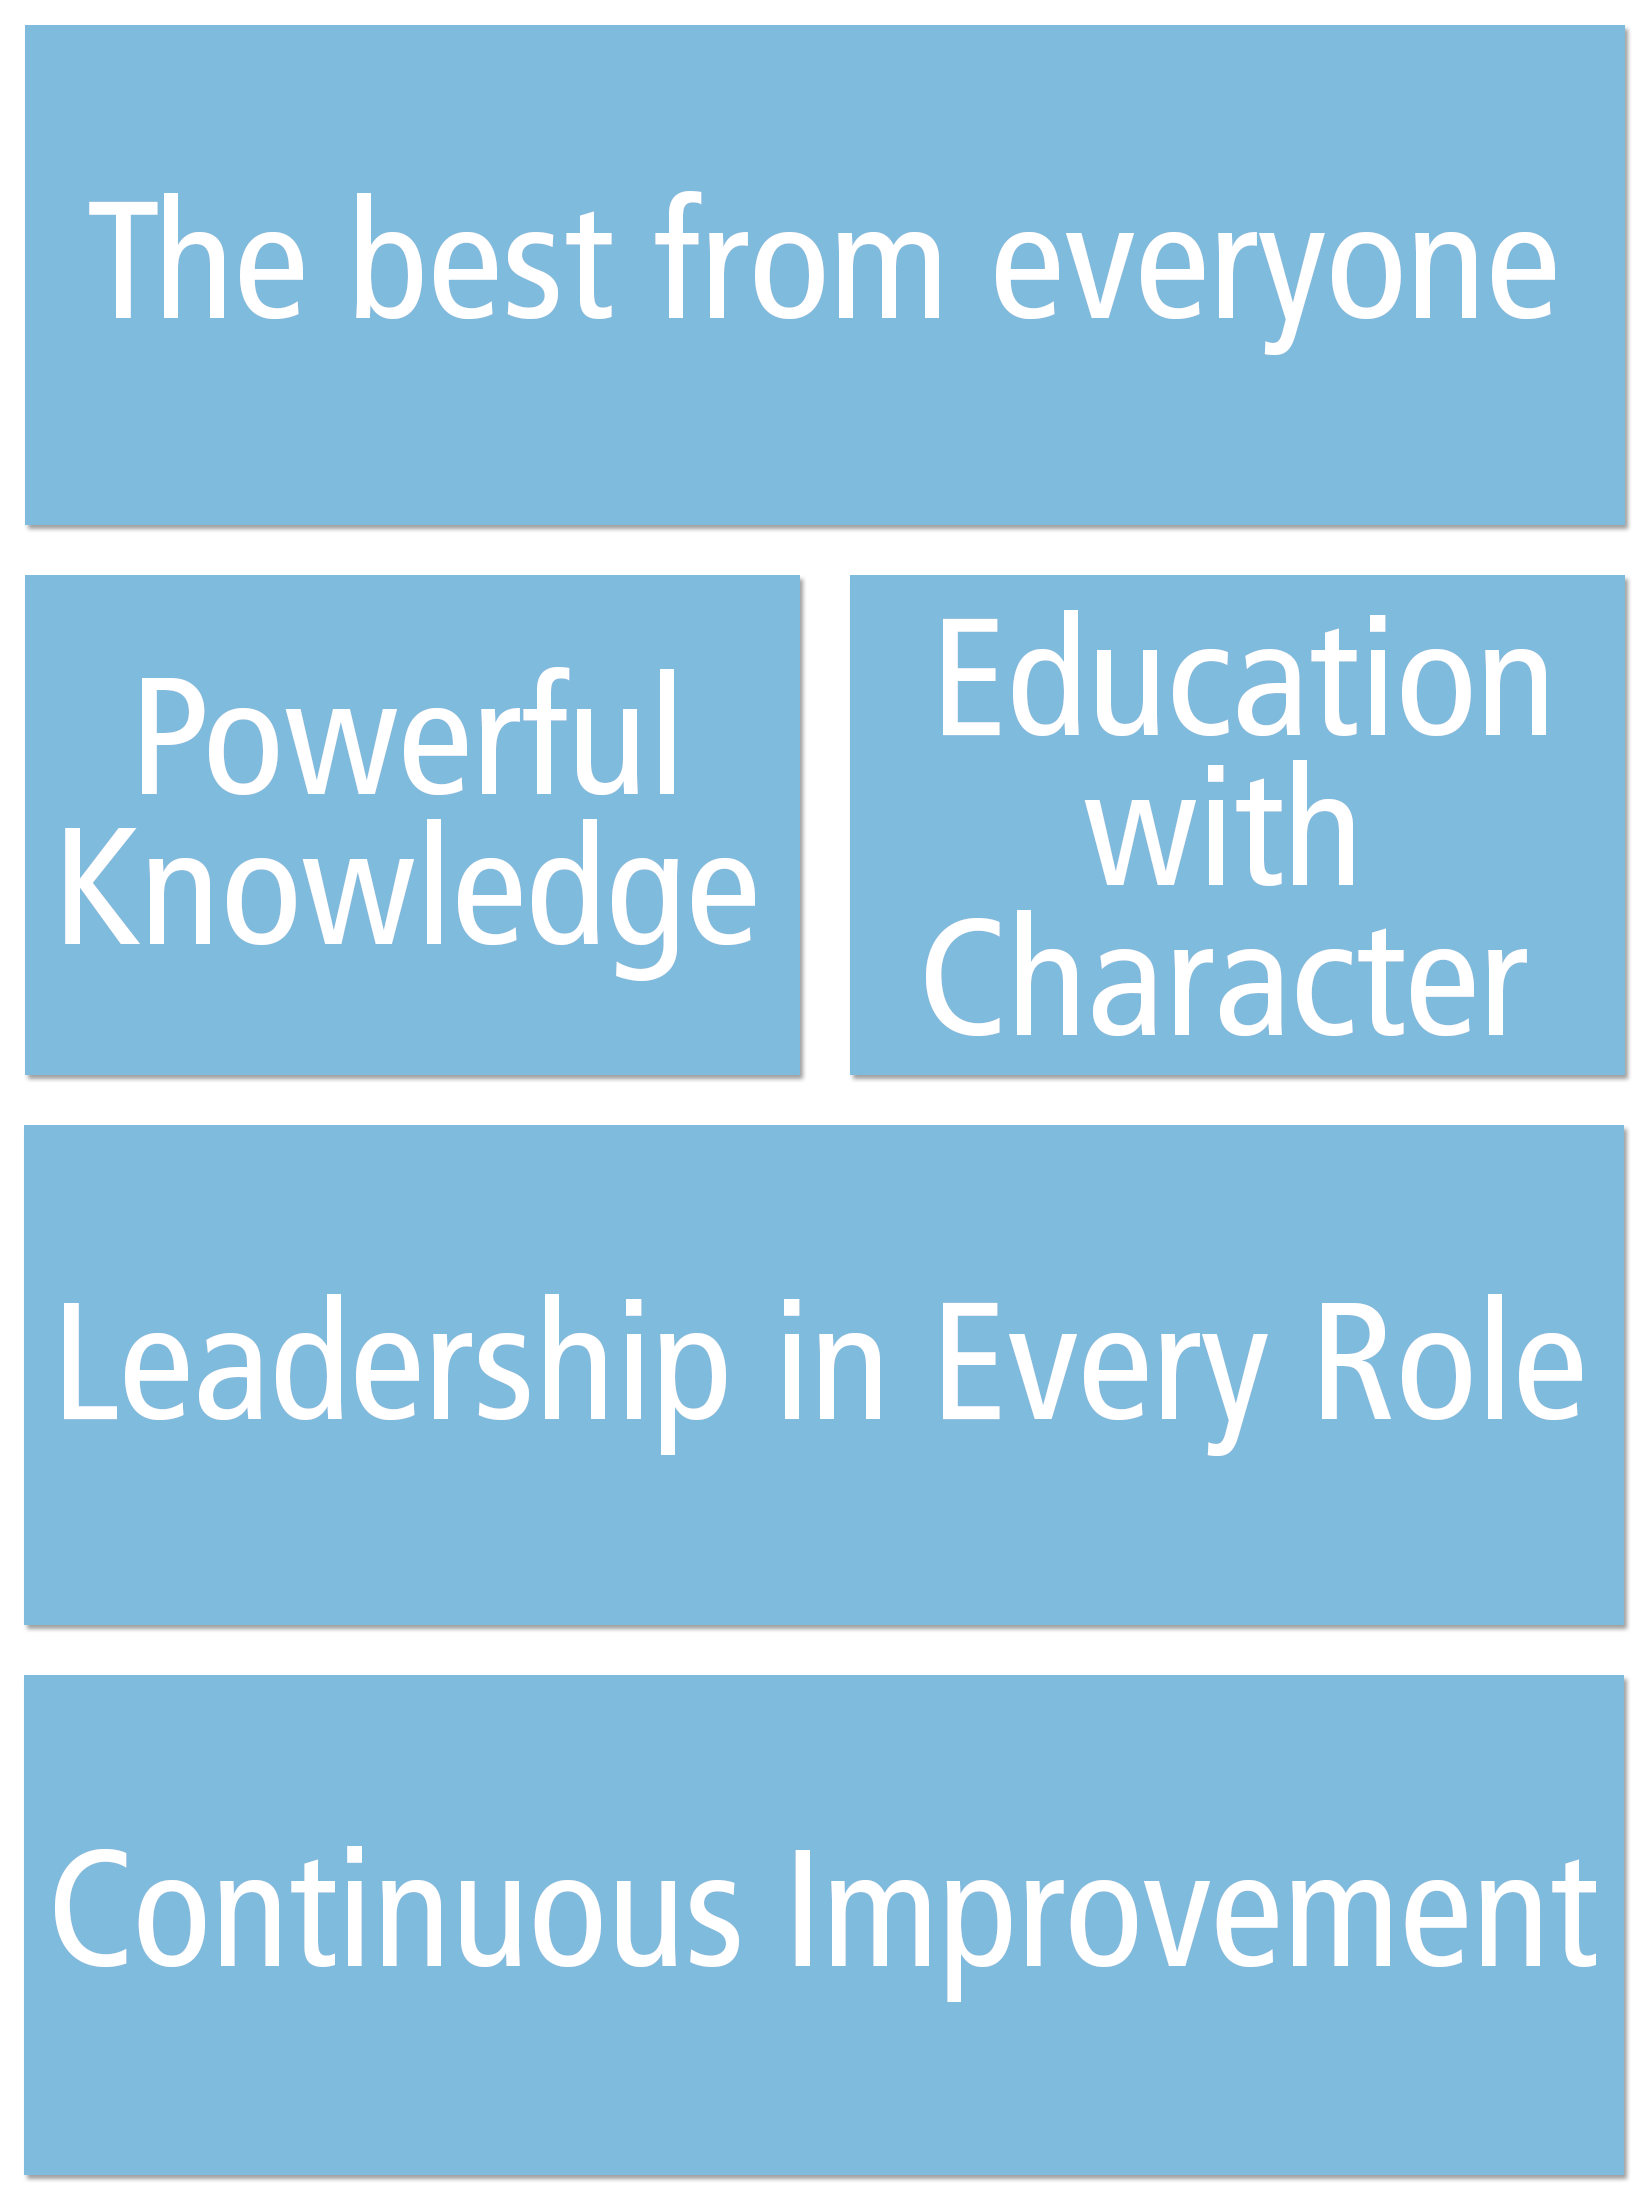 United Learning Framework for Excellence